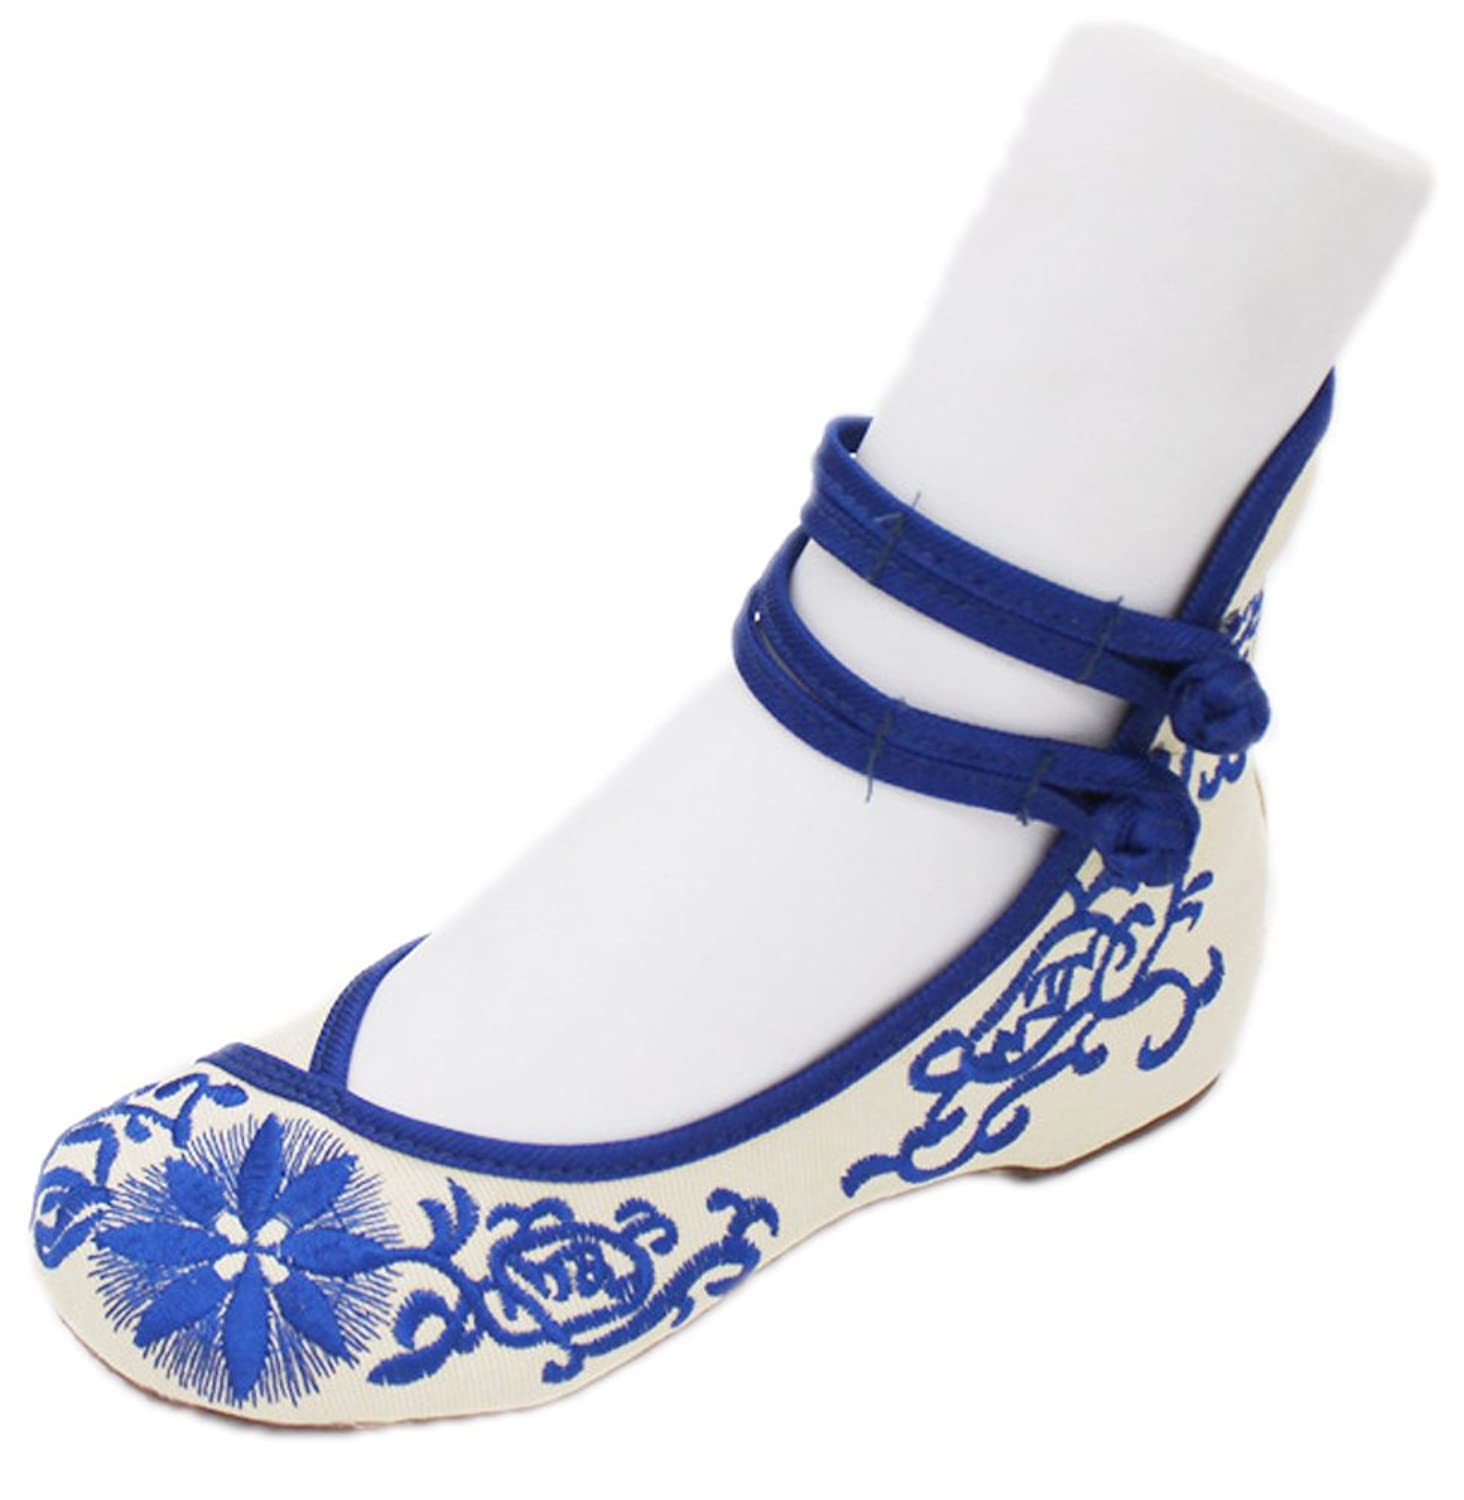 AvaCostume Womens Chinese Cheongsam Matched Shoes Casual Dance Shoes